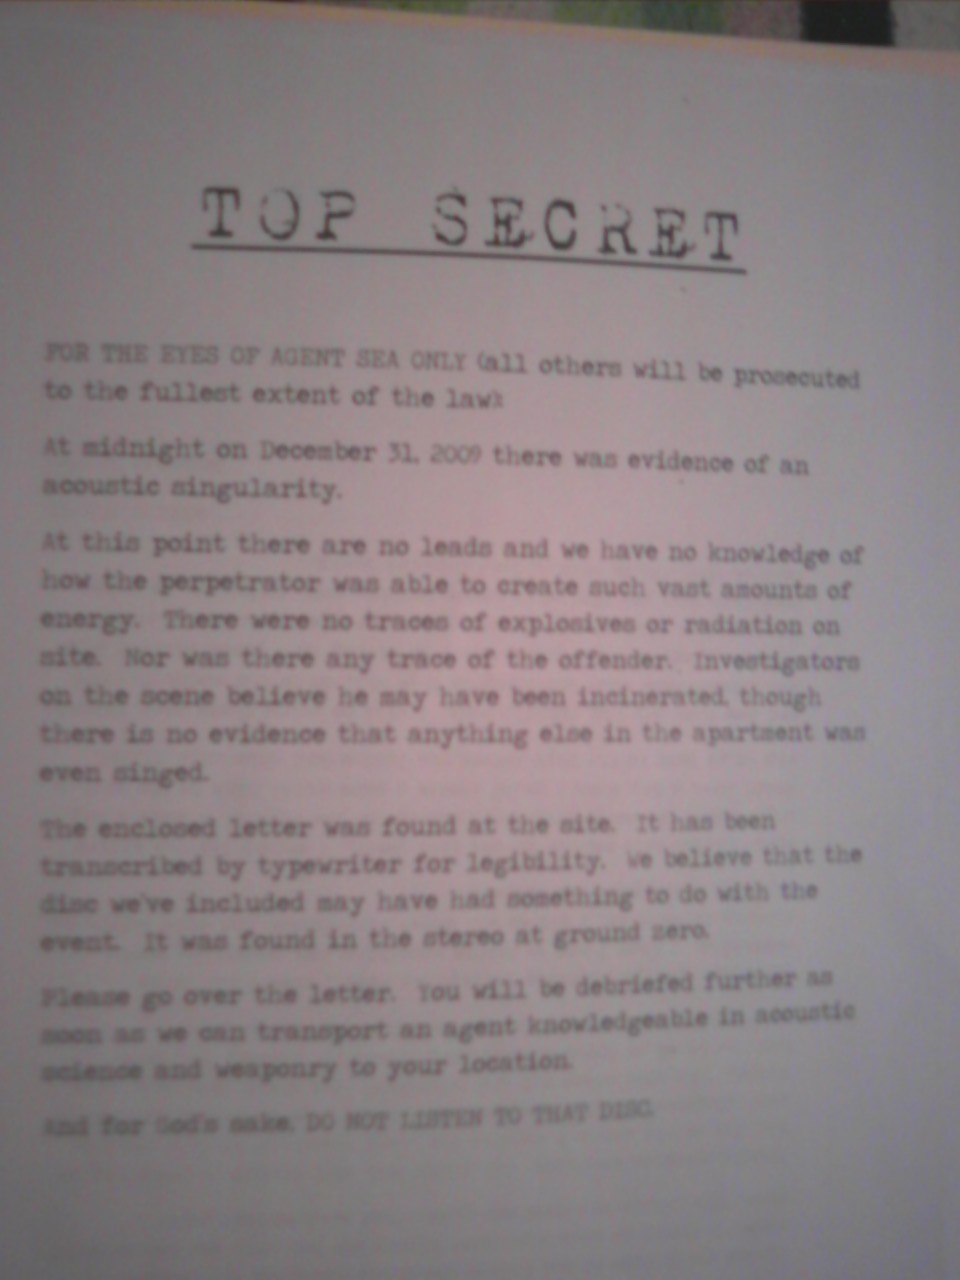 TOP SECRET DOCUMENTS 01